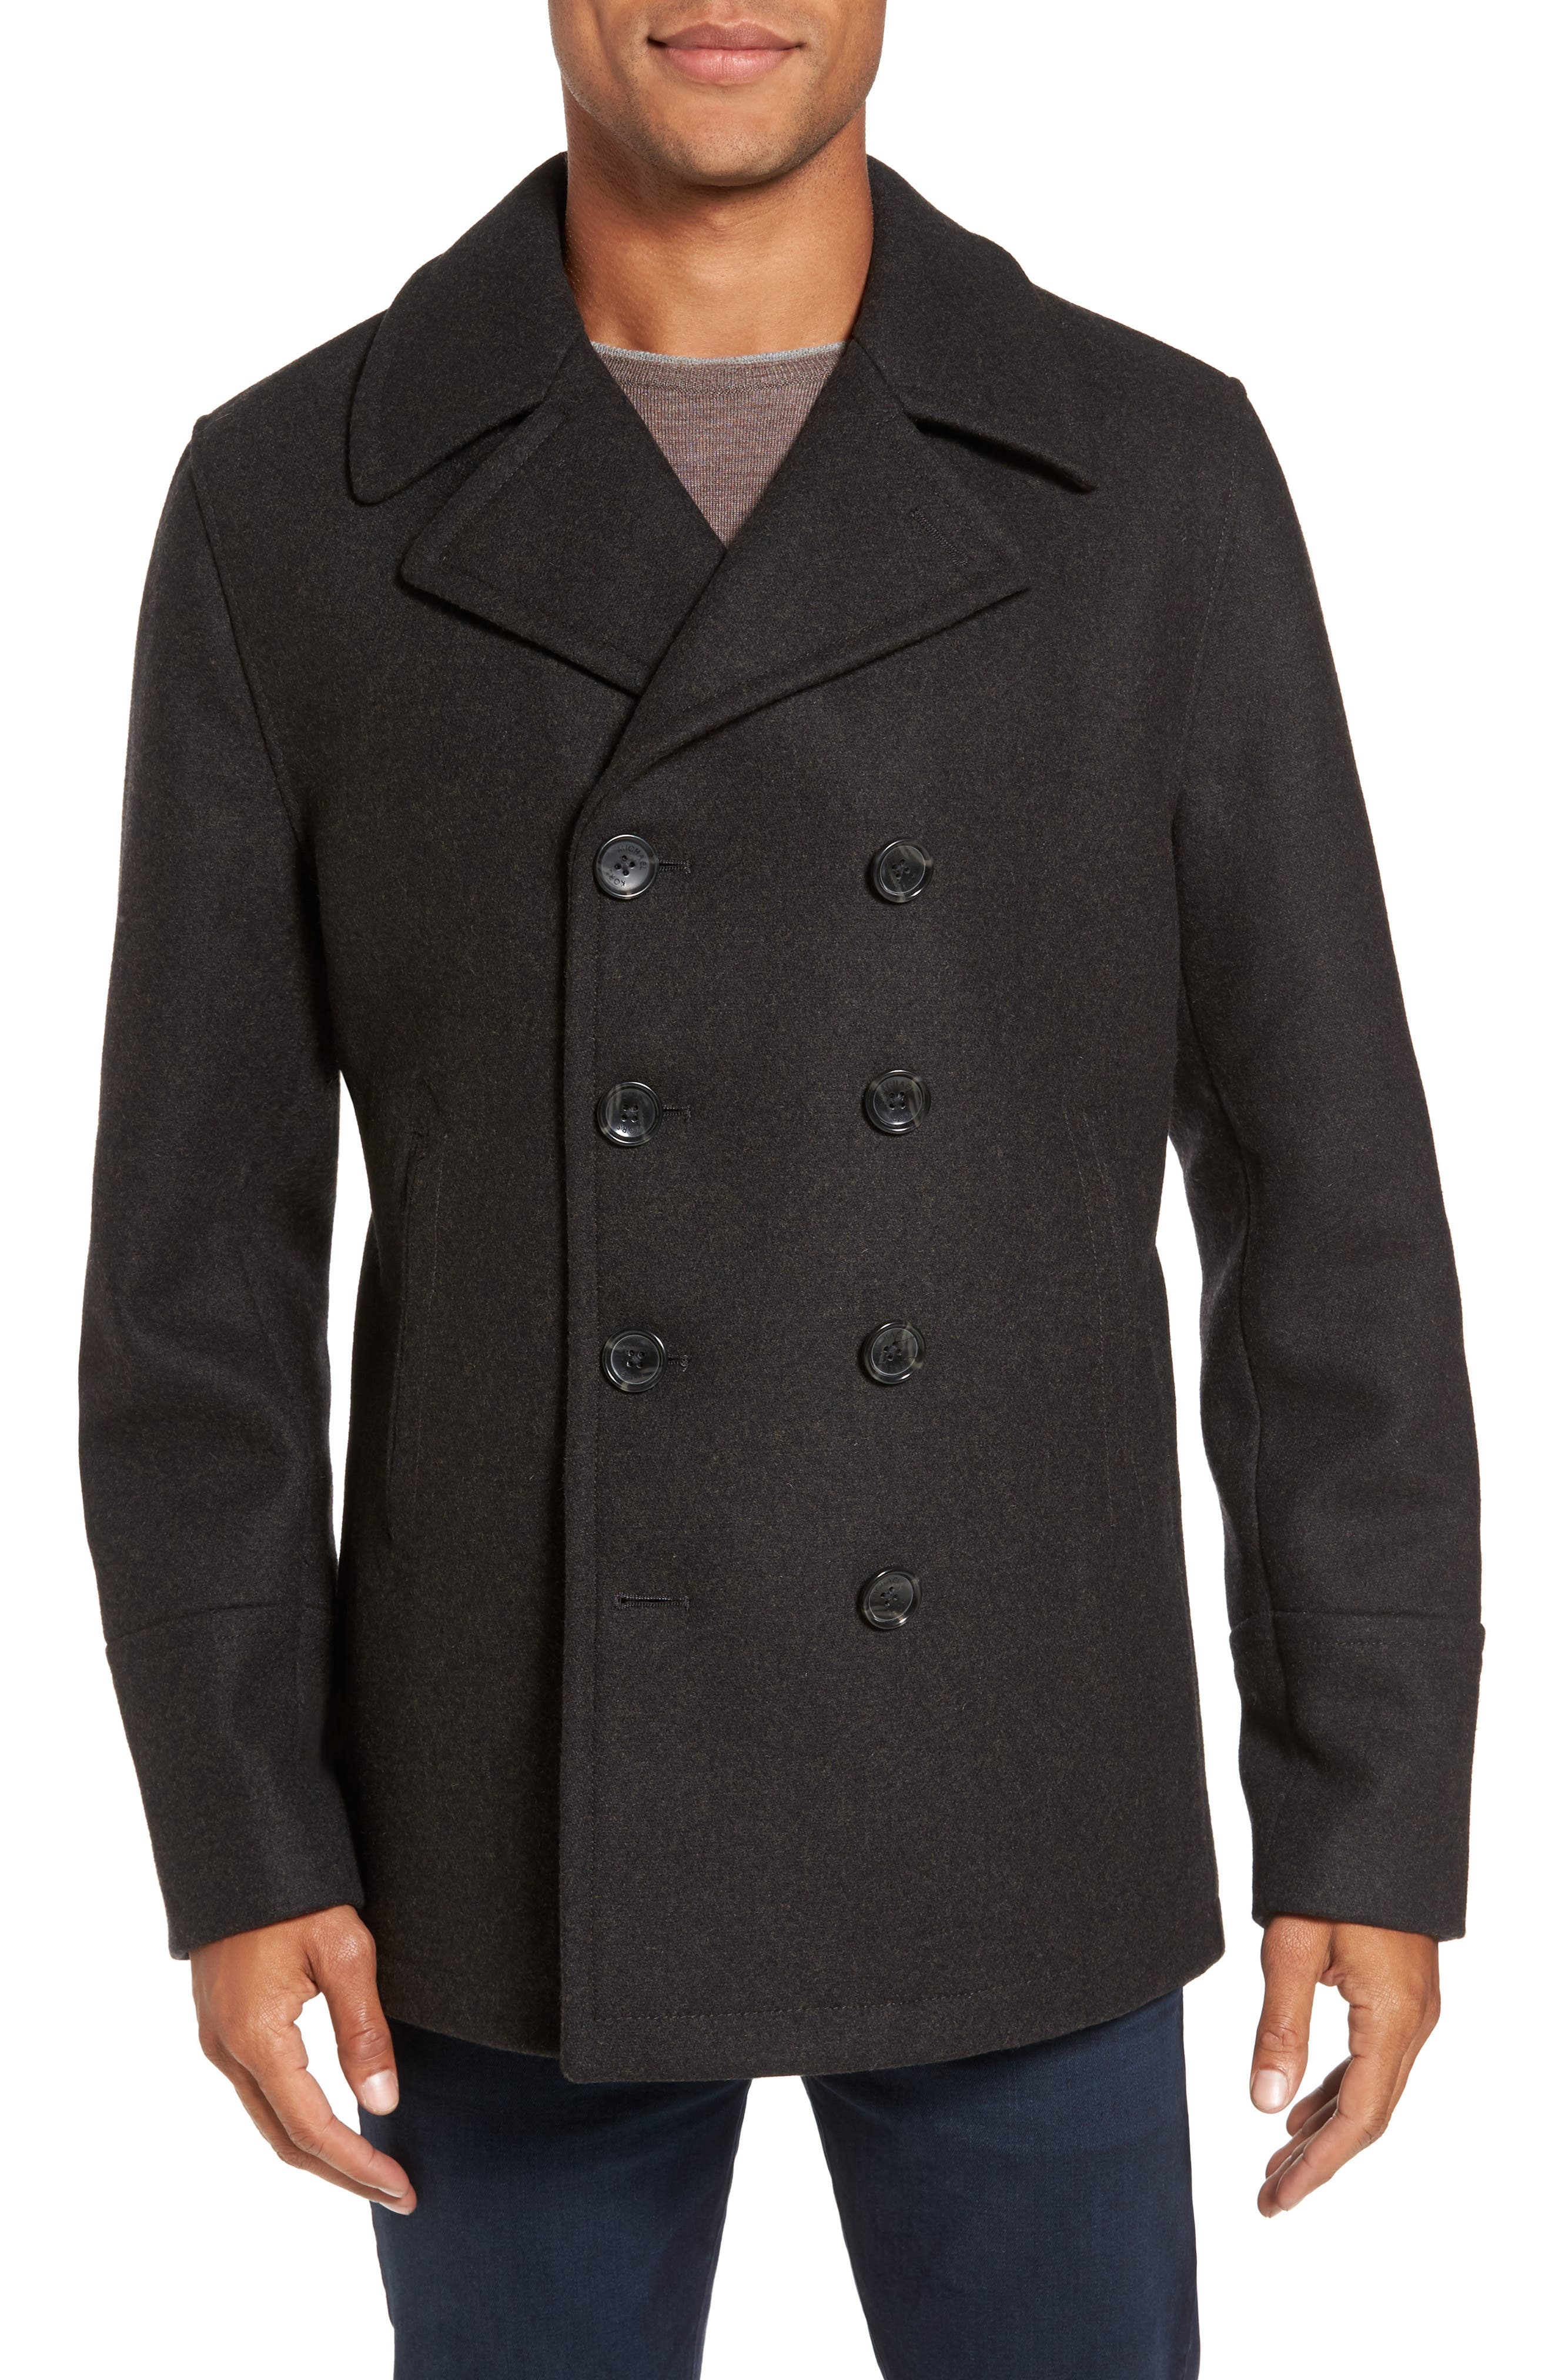 Wool Blend Peacoat,                             Main thumbnail 1, color,                             Loden Heather